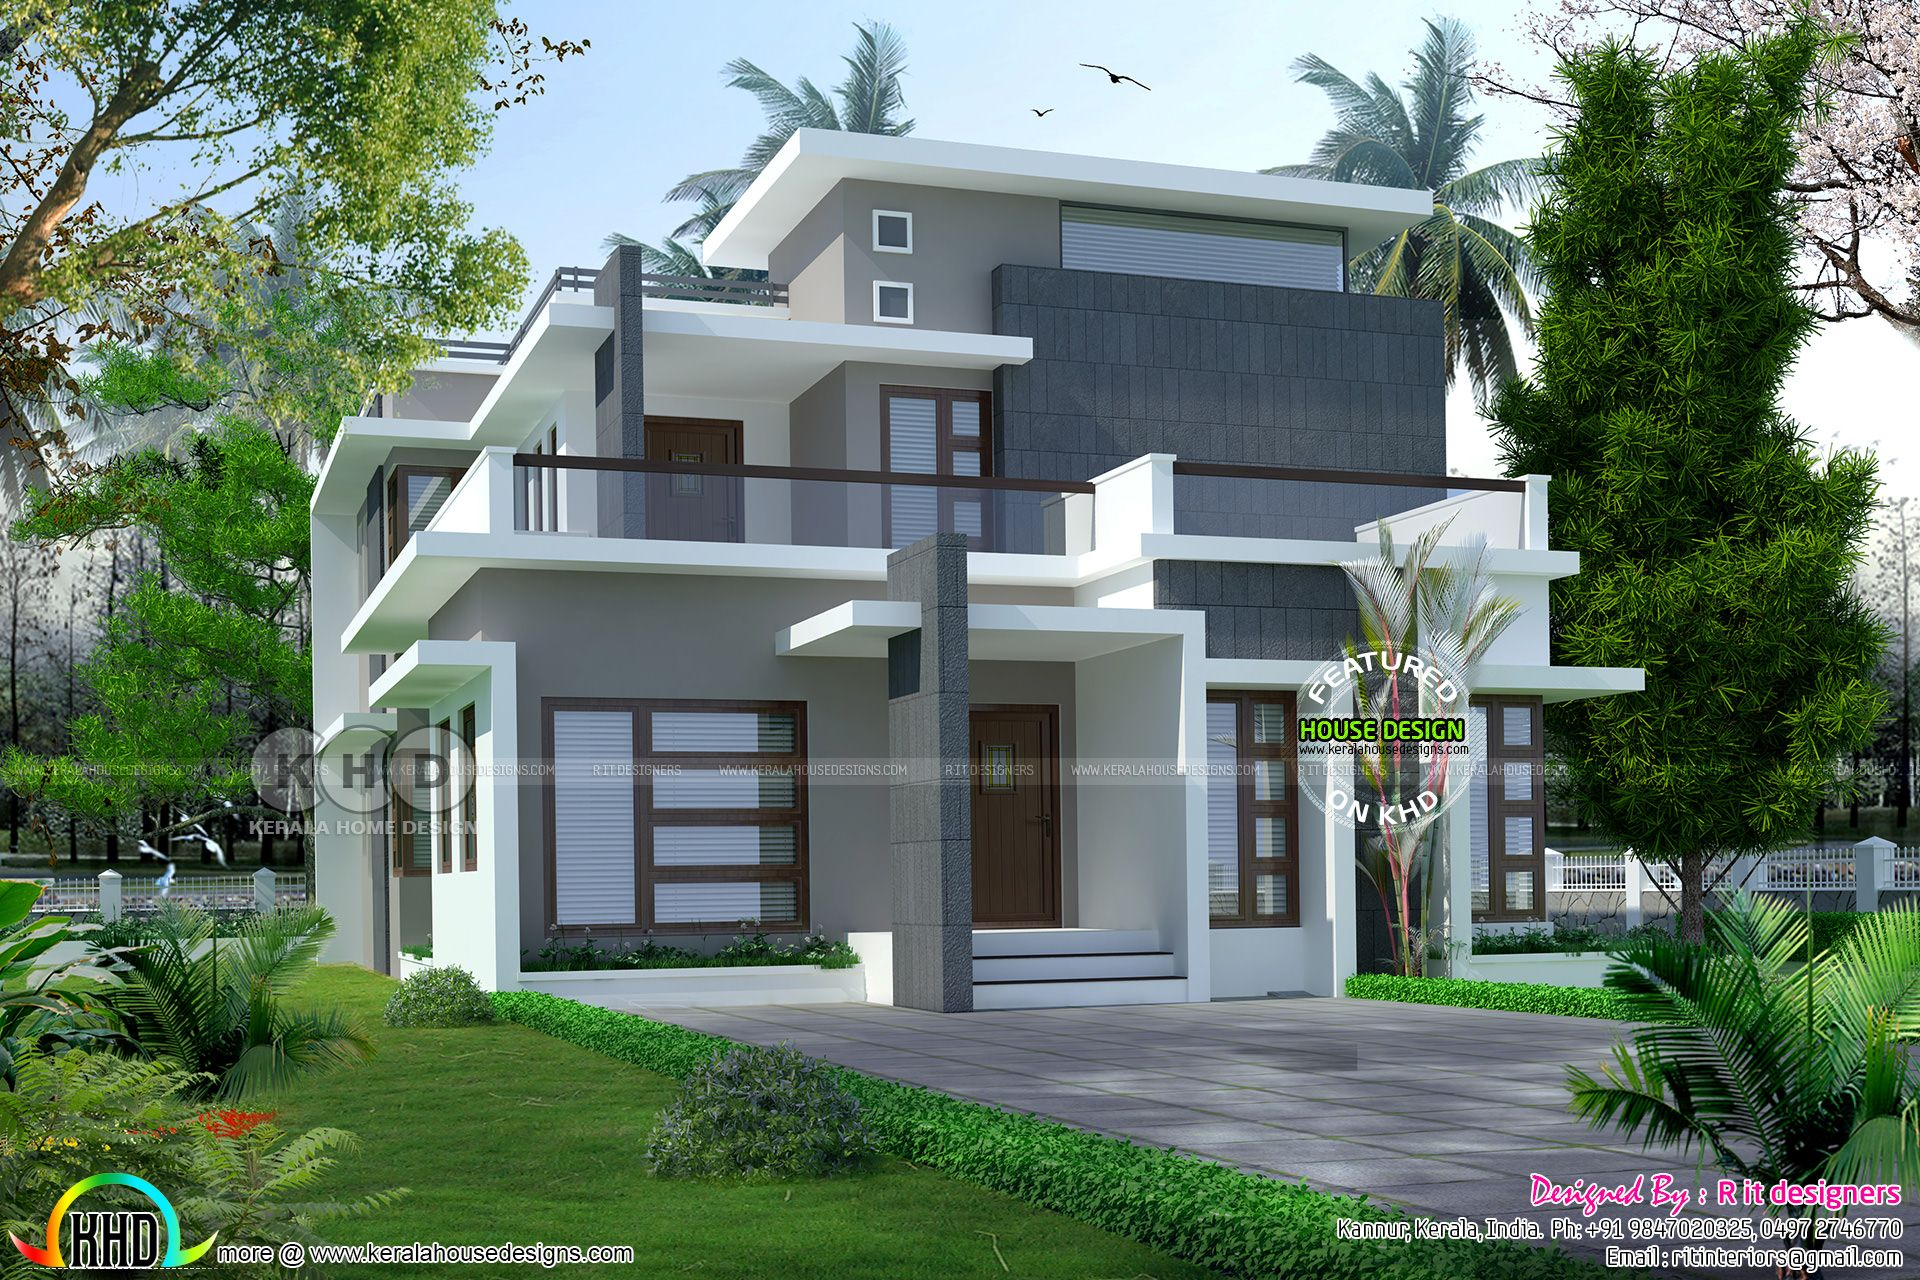 Attractive R It Designers (home Design In Kannur) Part - 3: 2238 Square Feet, 4 Bedroom Stylish Contemporary House Architecture By R It  Designers, Kannur, Kerala.